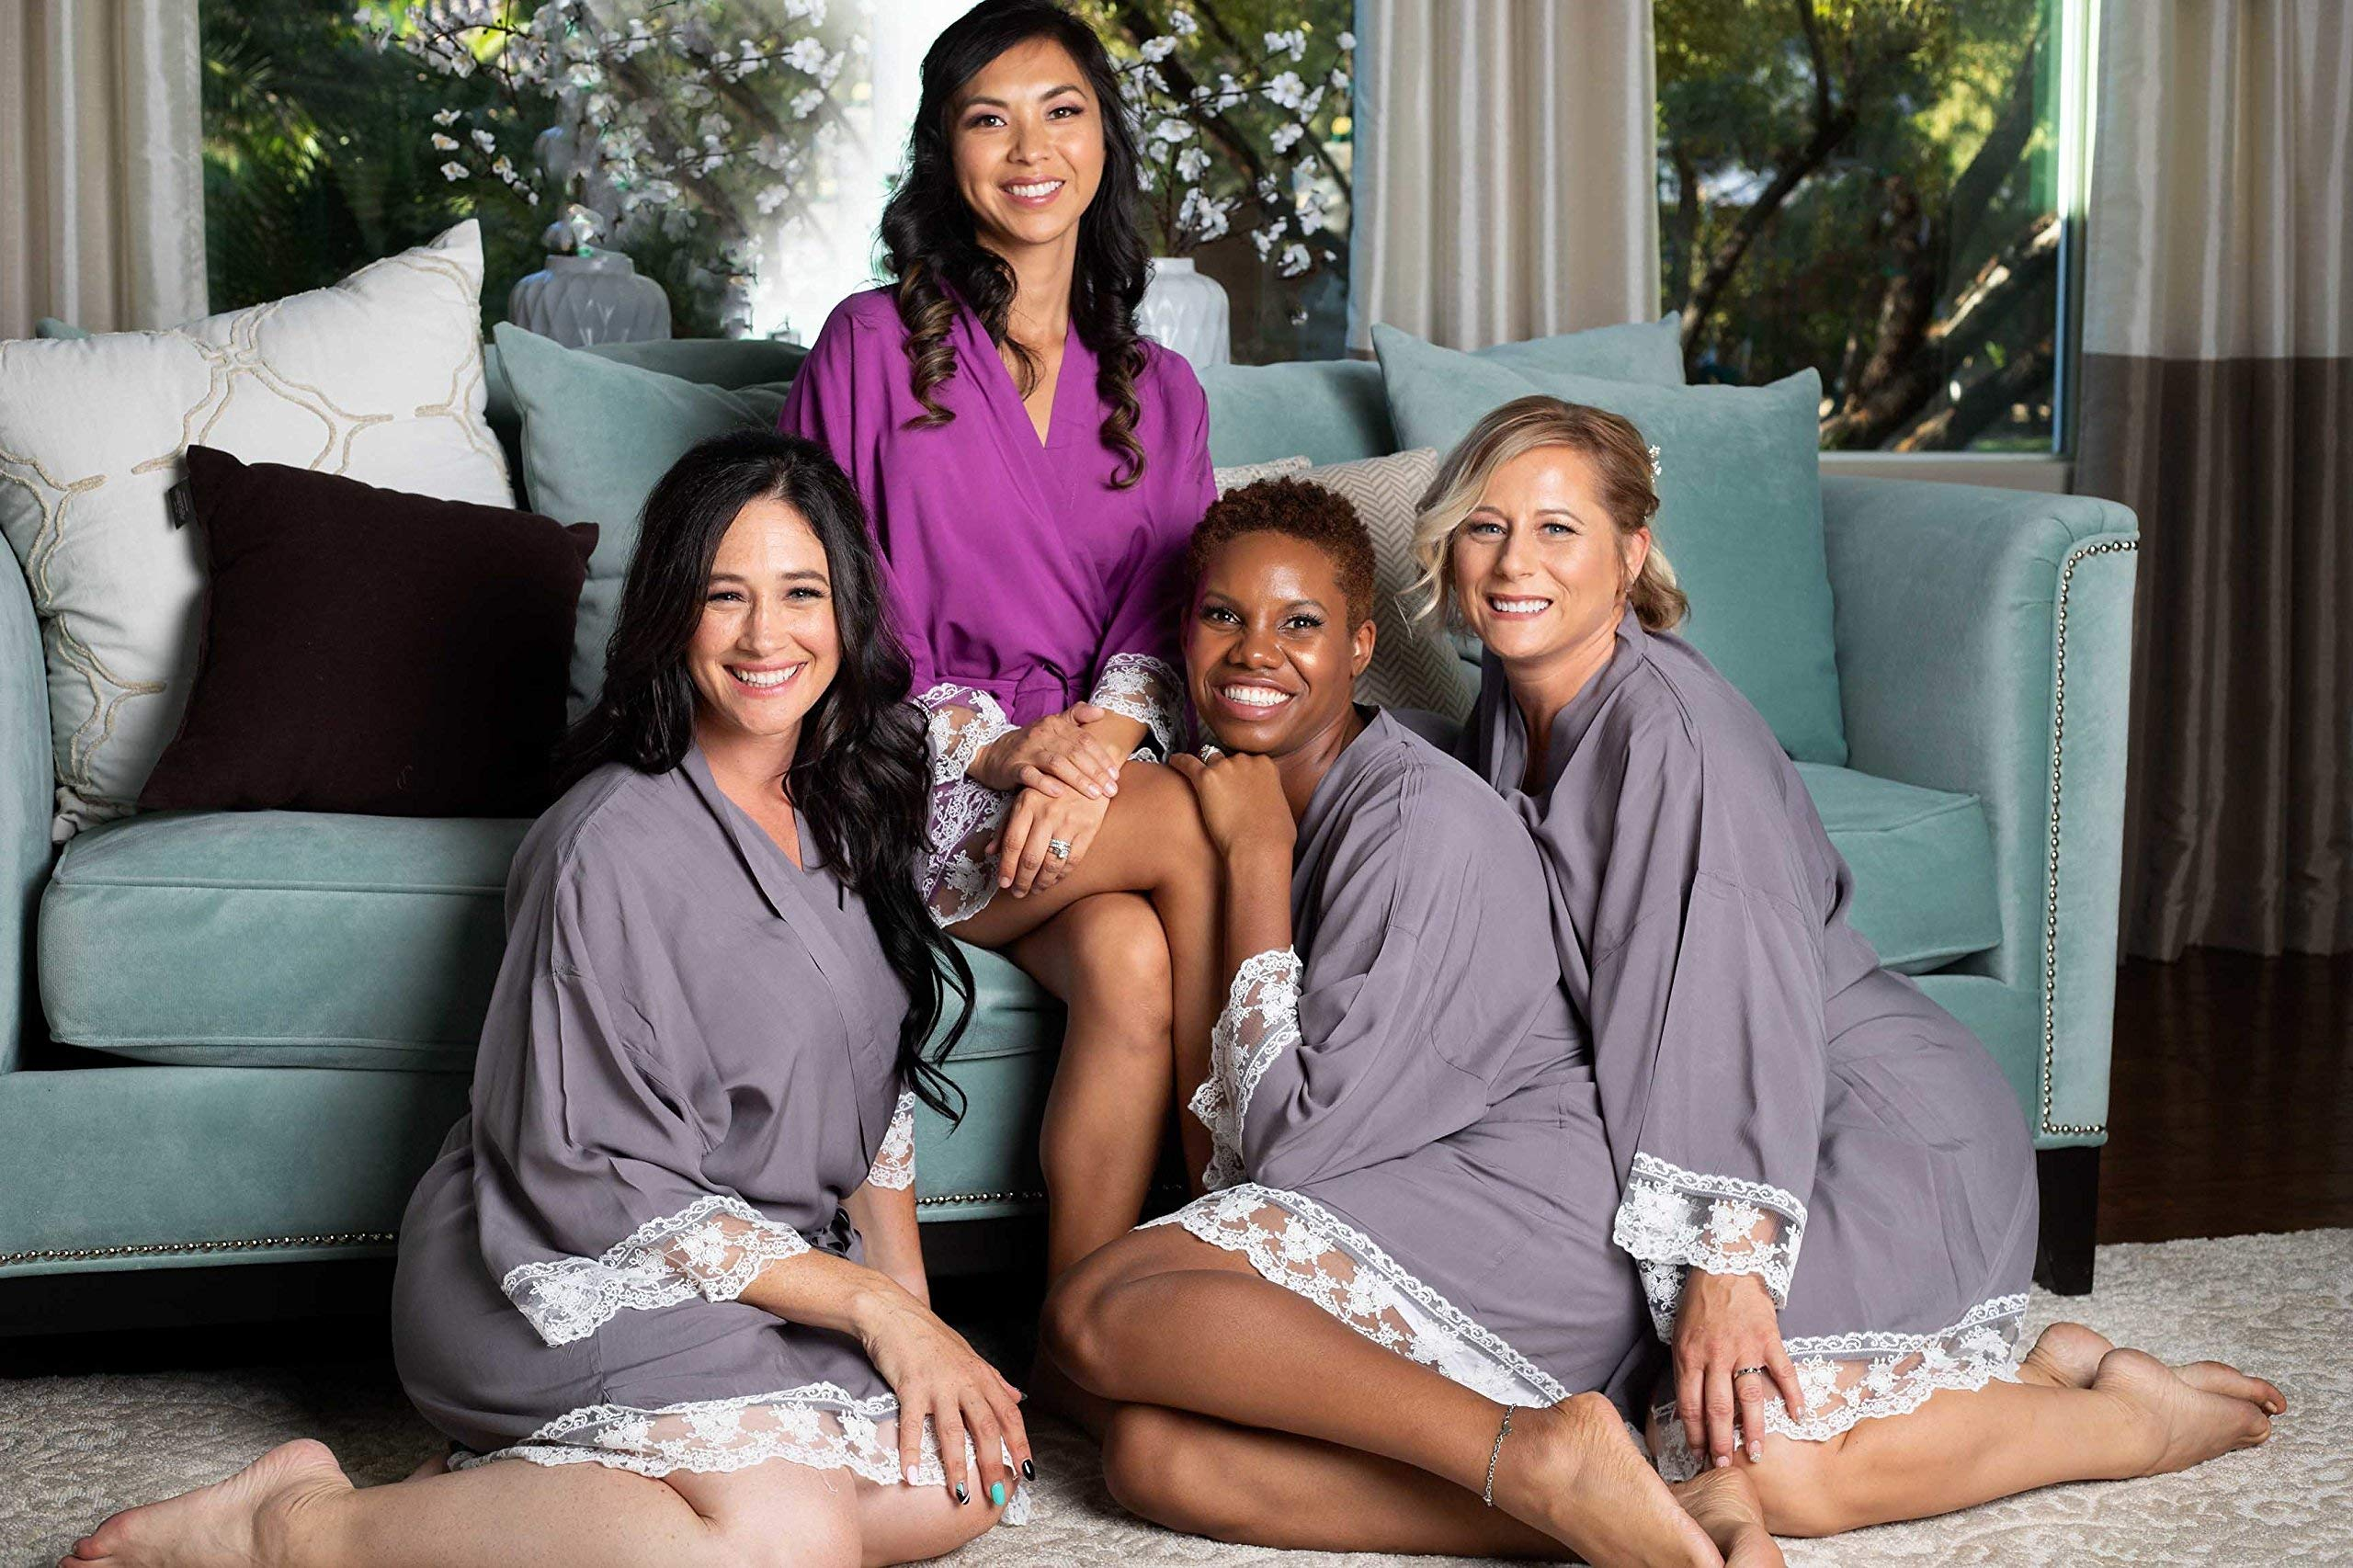 Grey Cotton Bridesmaid Robes With White Lace Trim